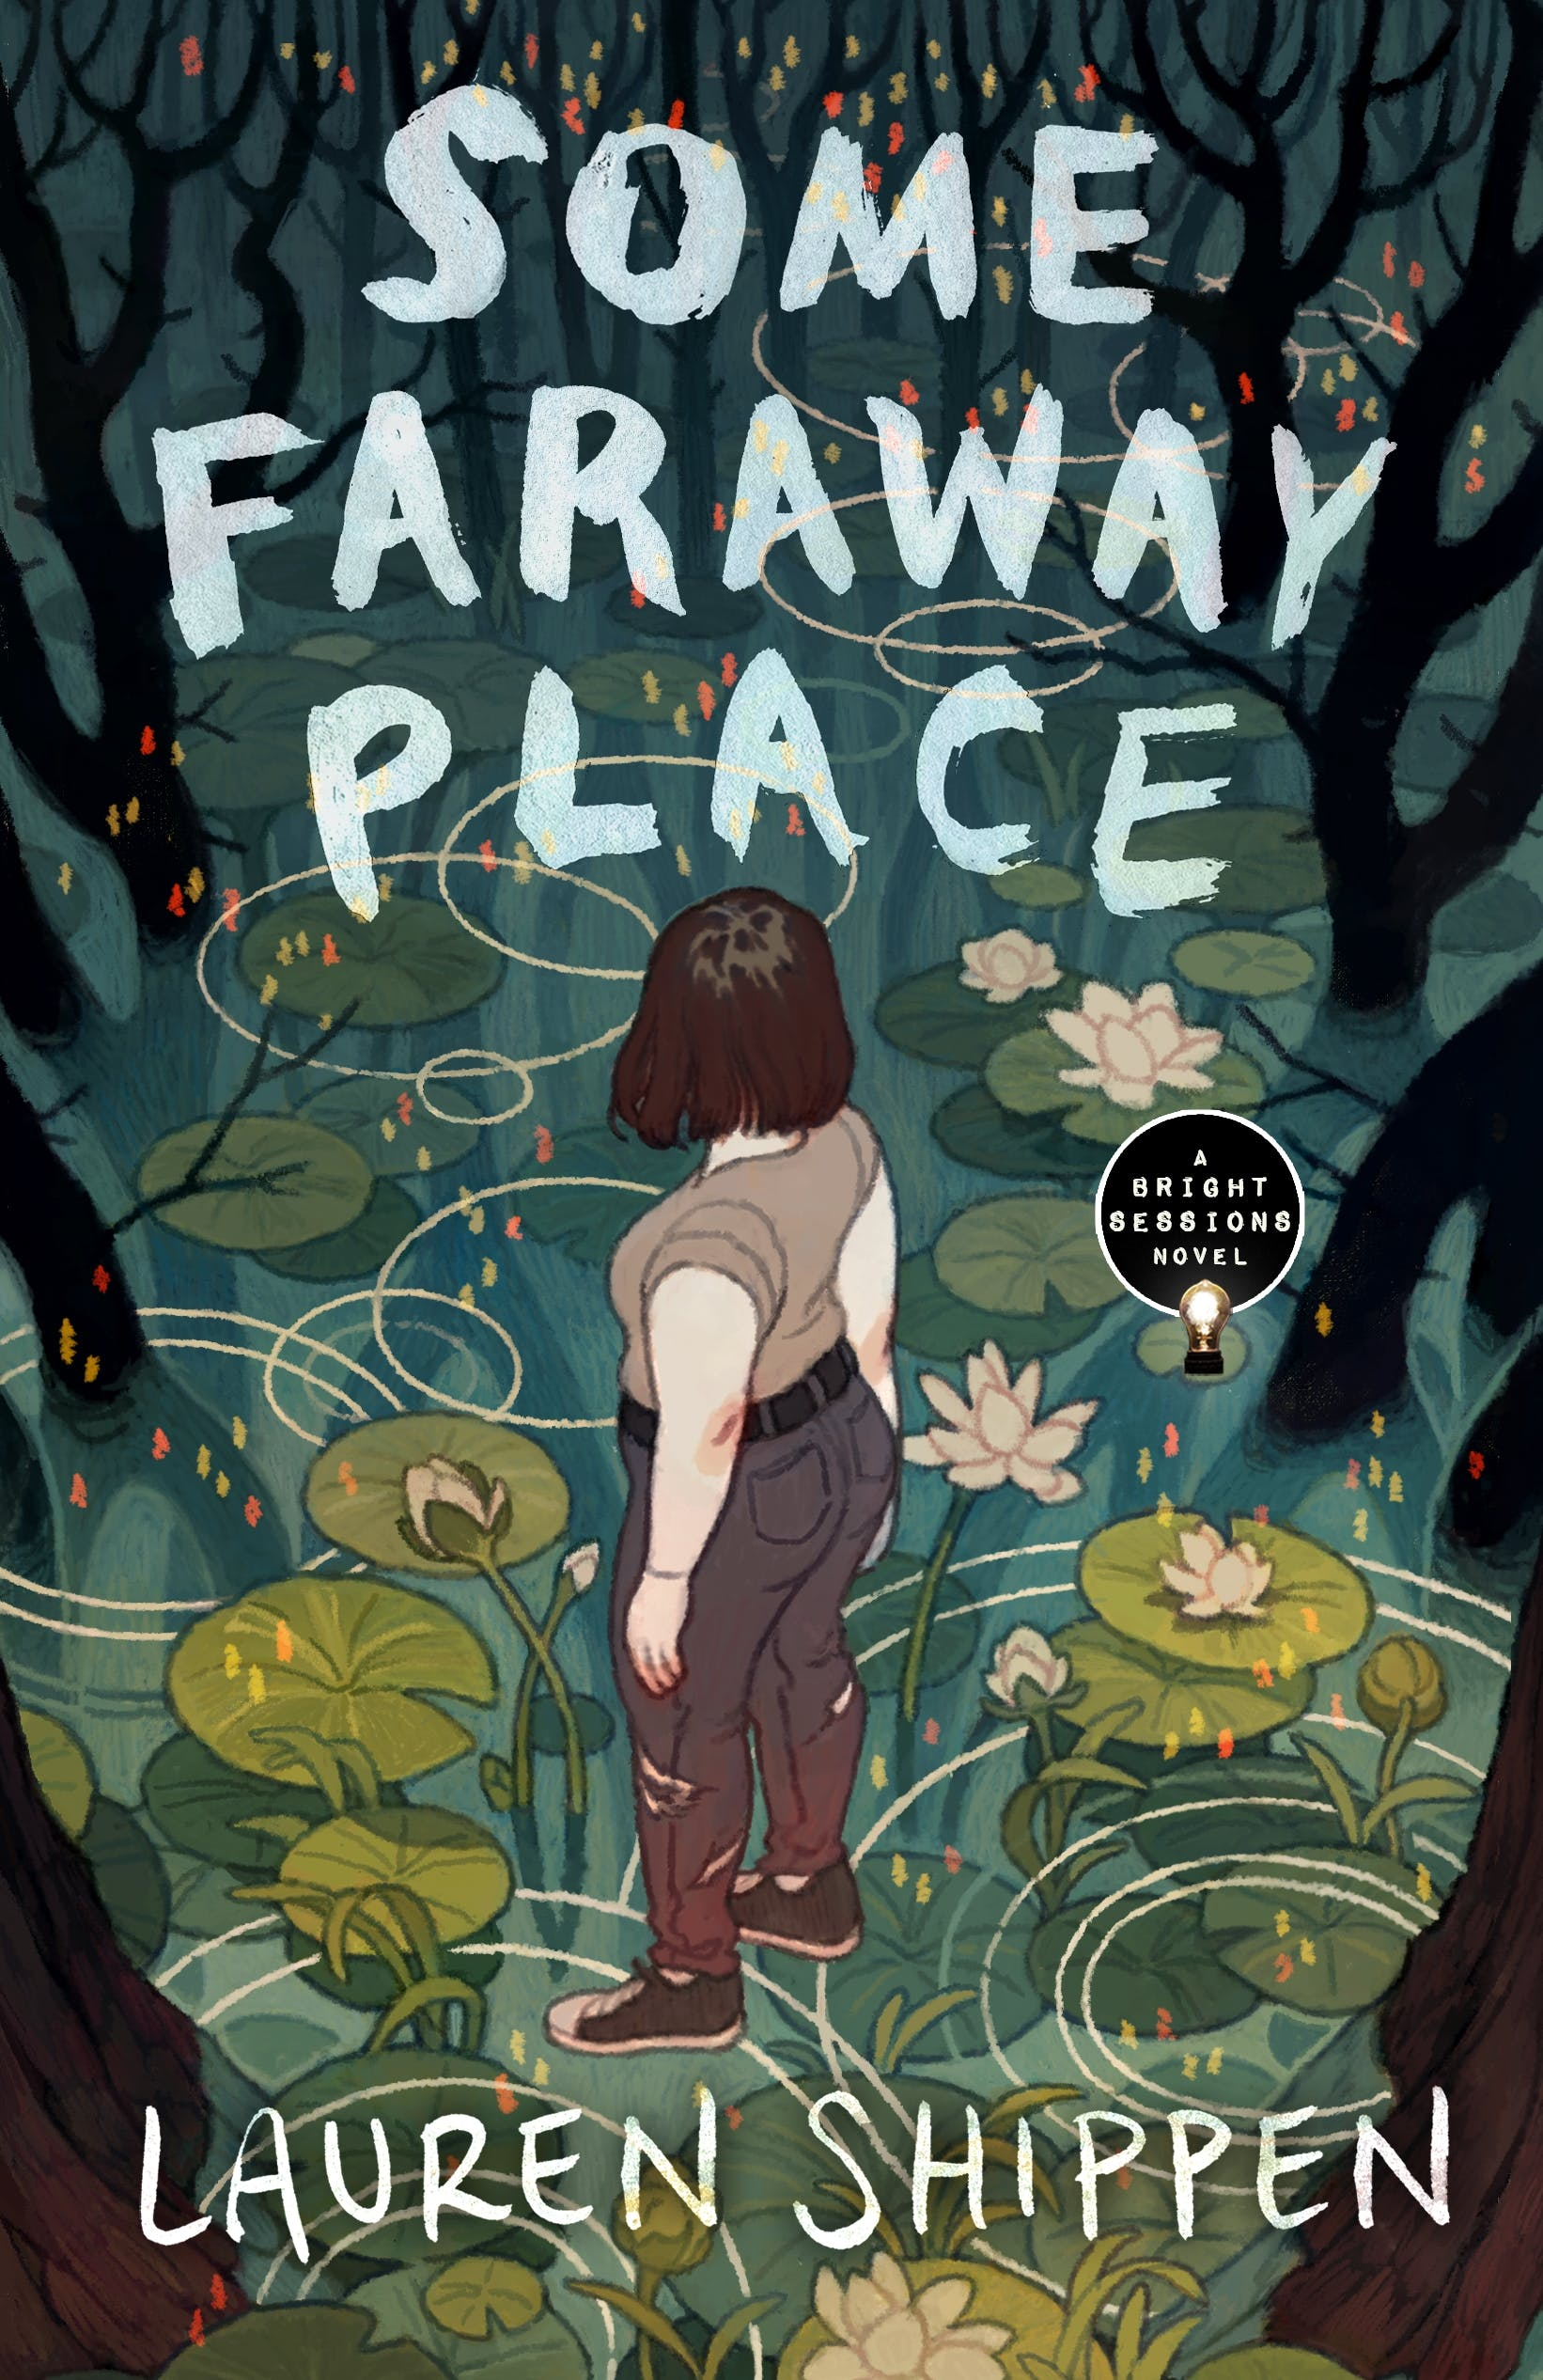 Image of Some Faraway Place